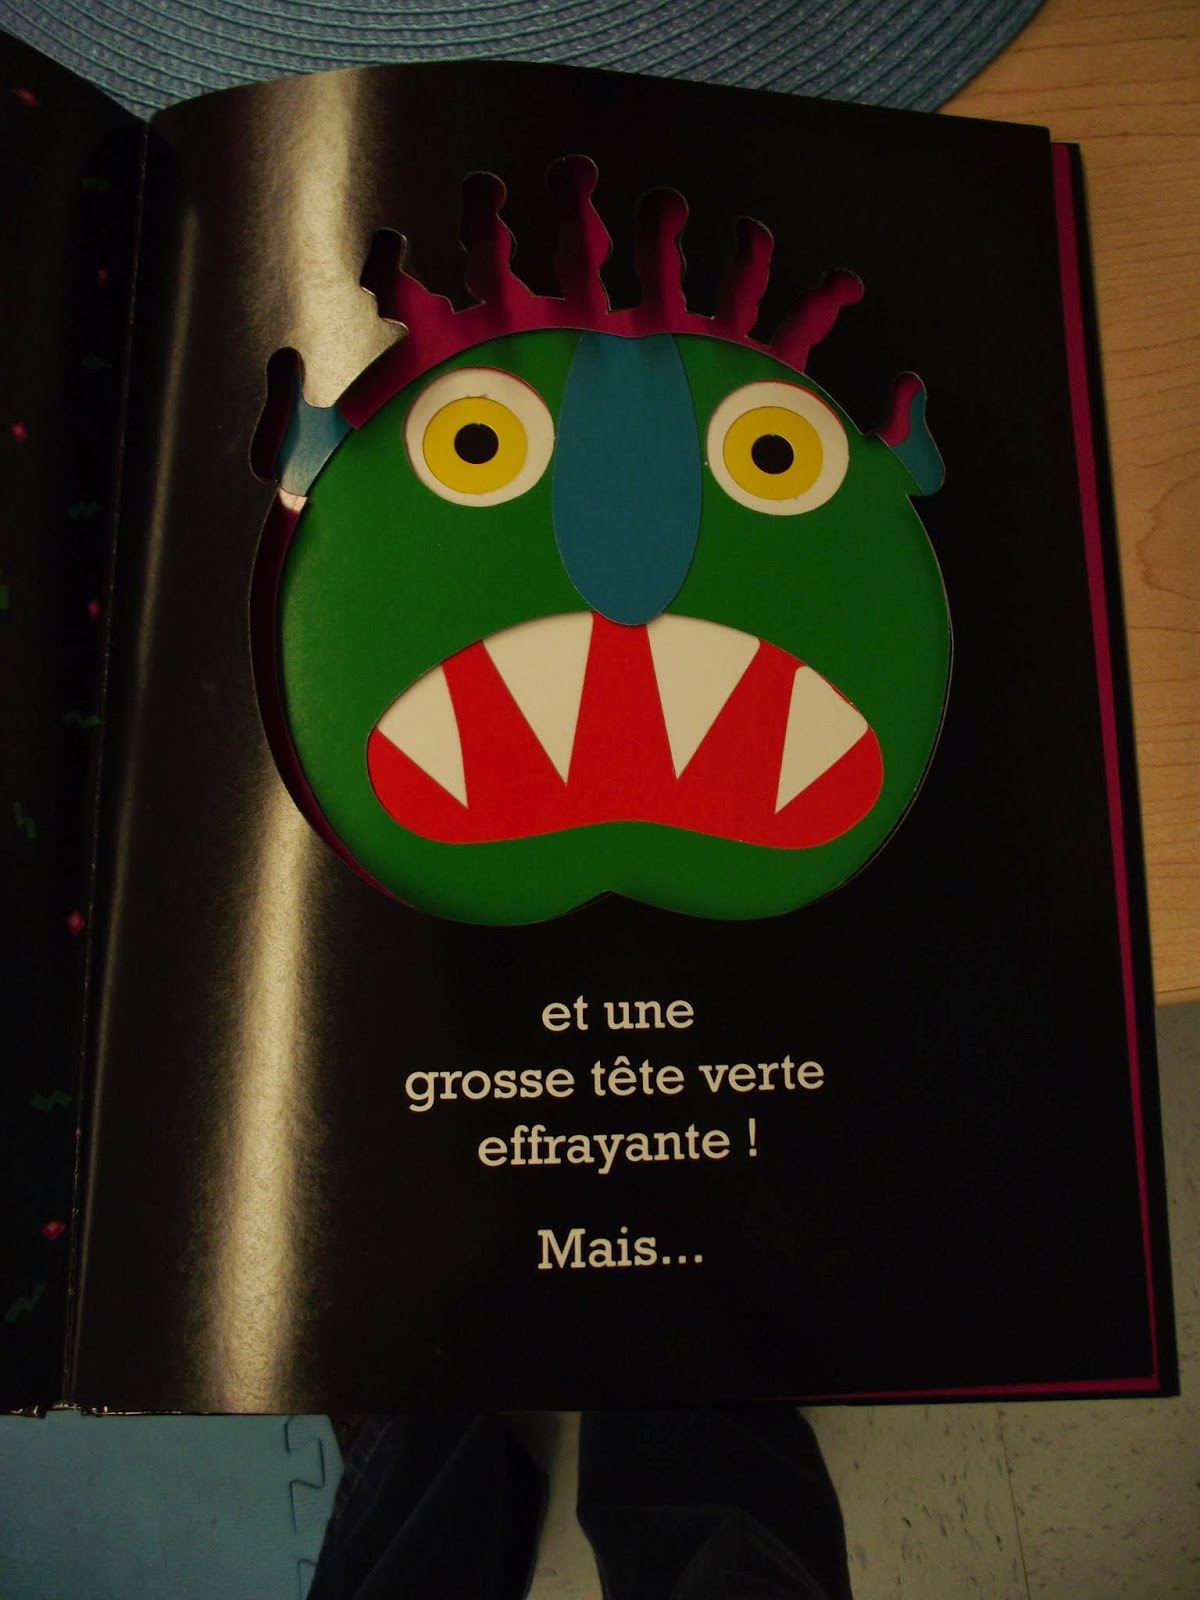 Va T En Grand Monstre Vert : grand, monstre, Maternelle, Francesca:, Va-t'en, Grand, Monstre, Vert!